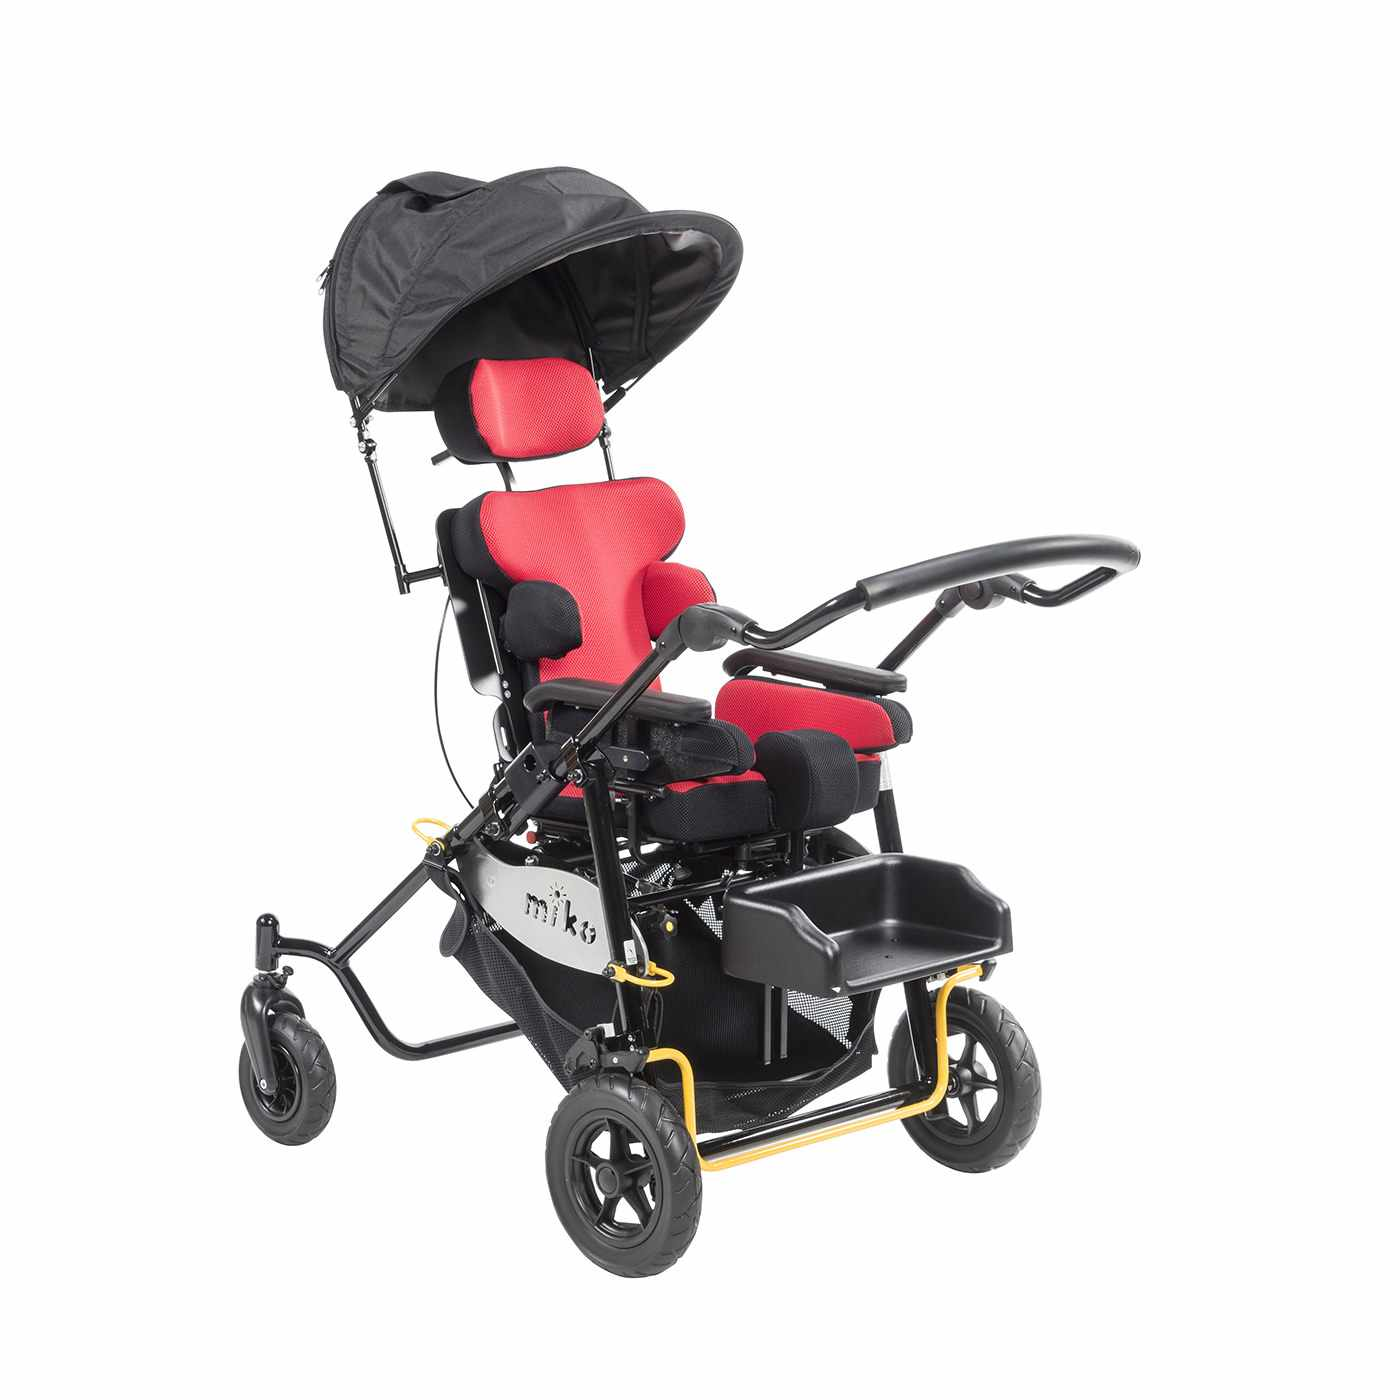 Miko stroller with tray